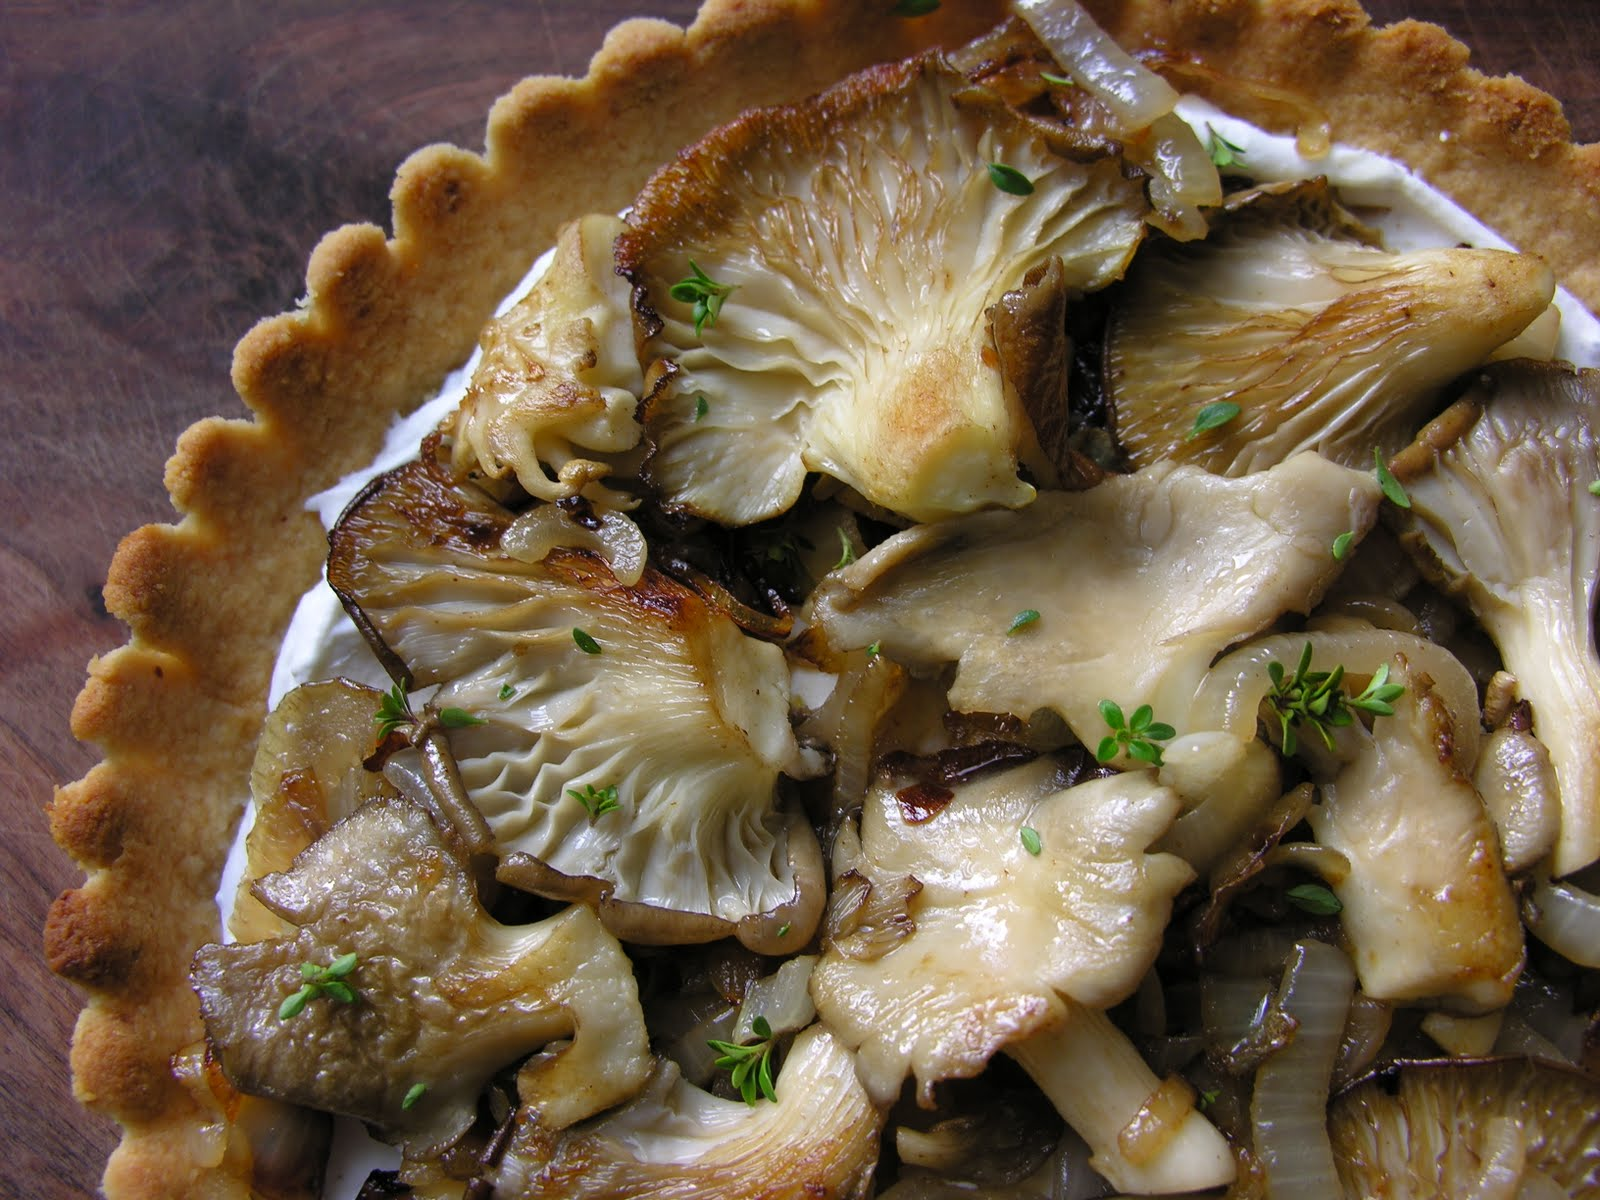 Girl In An Apron: Herbed Chèvre and Oyster Mushroom Tart ...